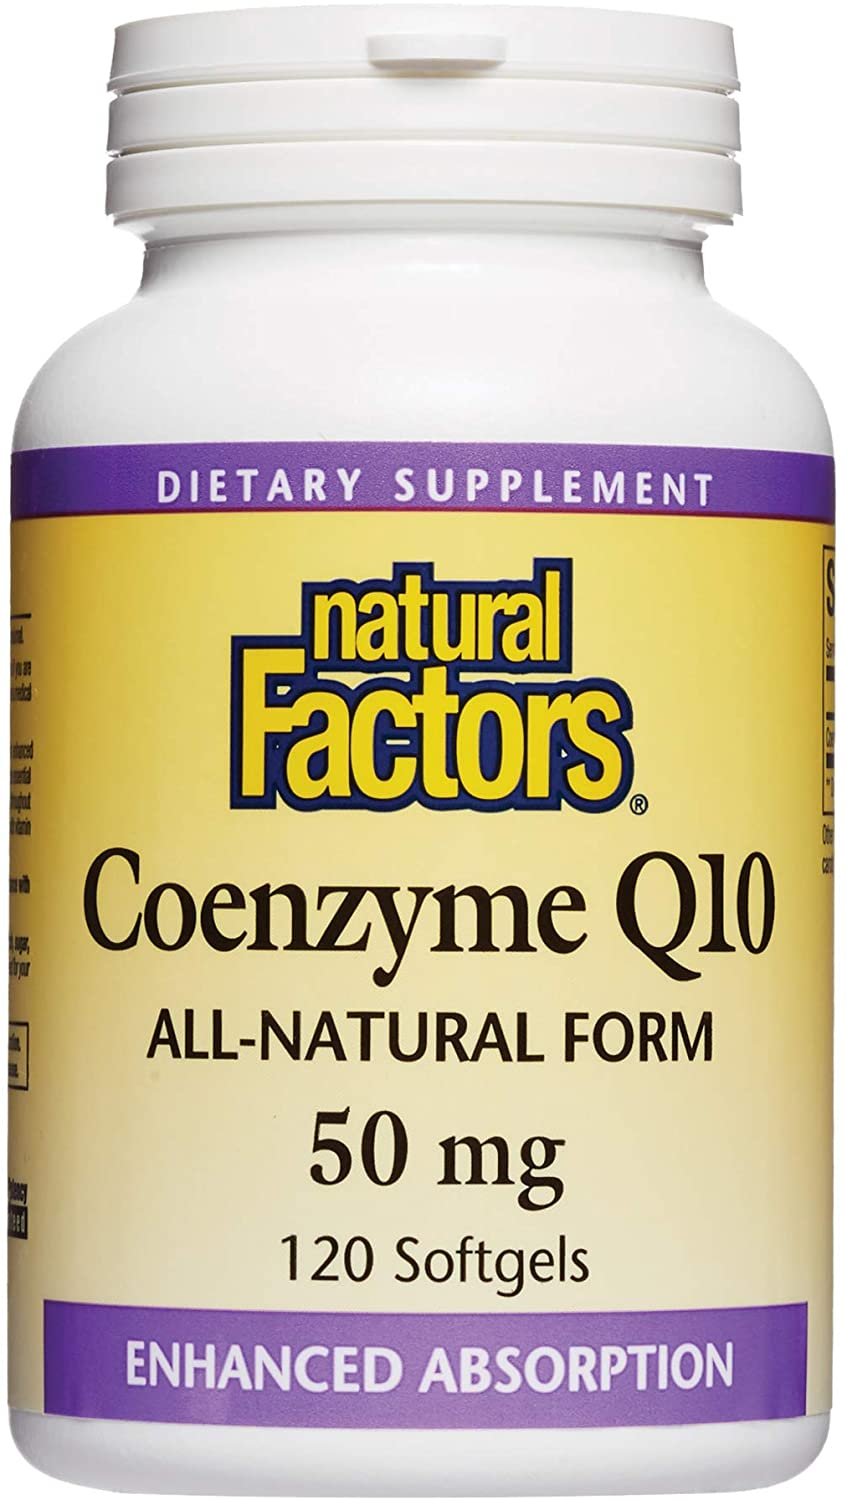 Natural Factors, Coenzyme Q10 50mg, CoQ10 Supplement for Energy, Heart and Antioxidant Support, Gluten Free, 120 softgels (120 servings)